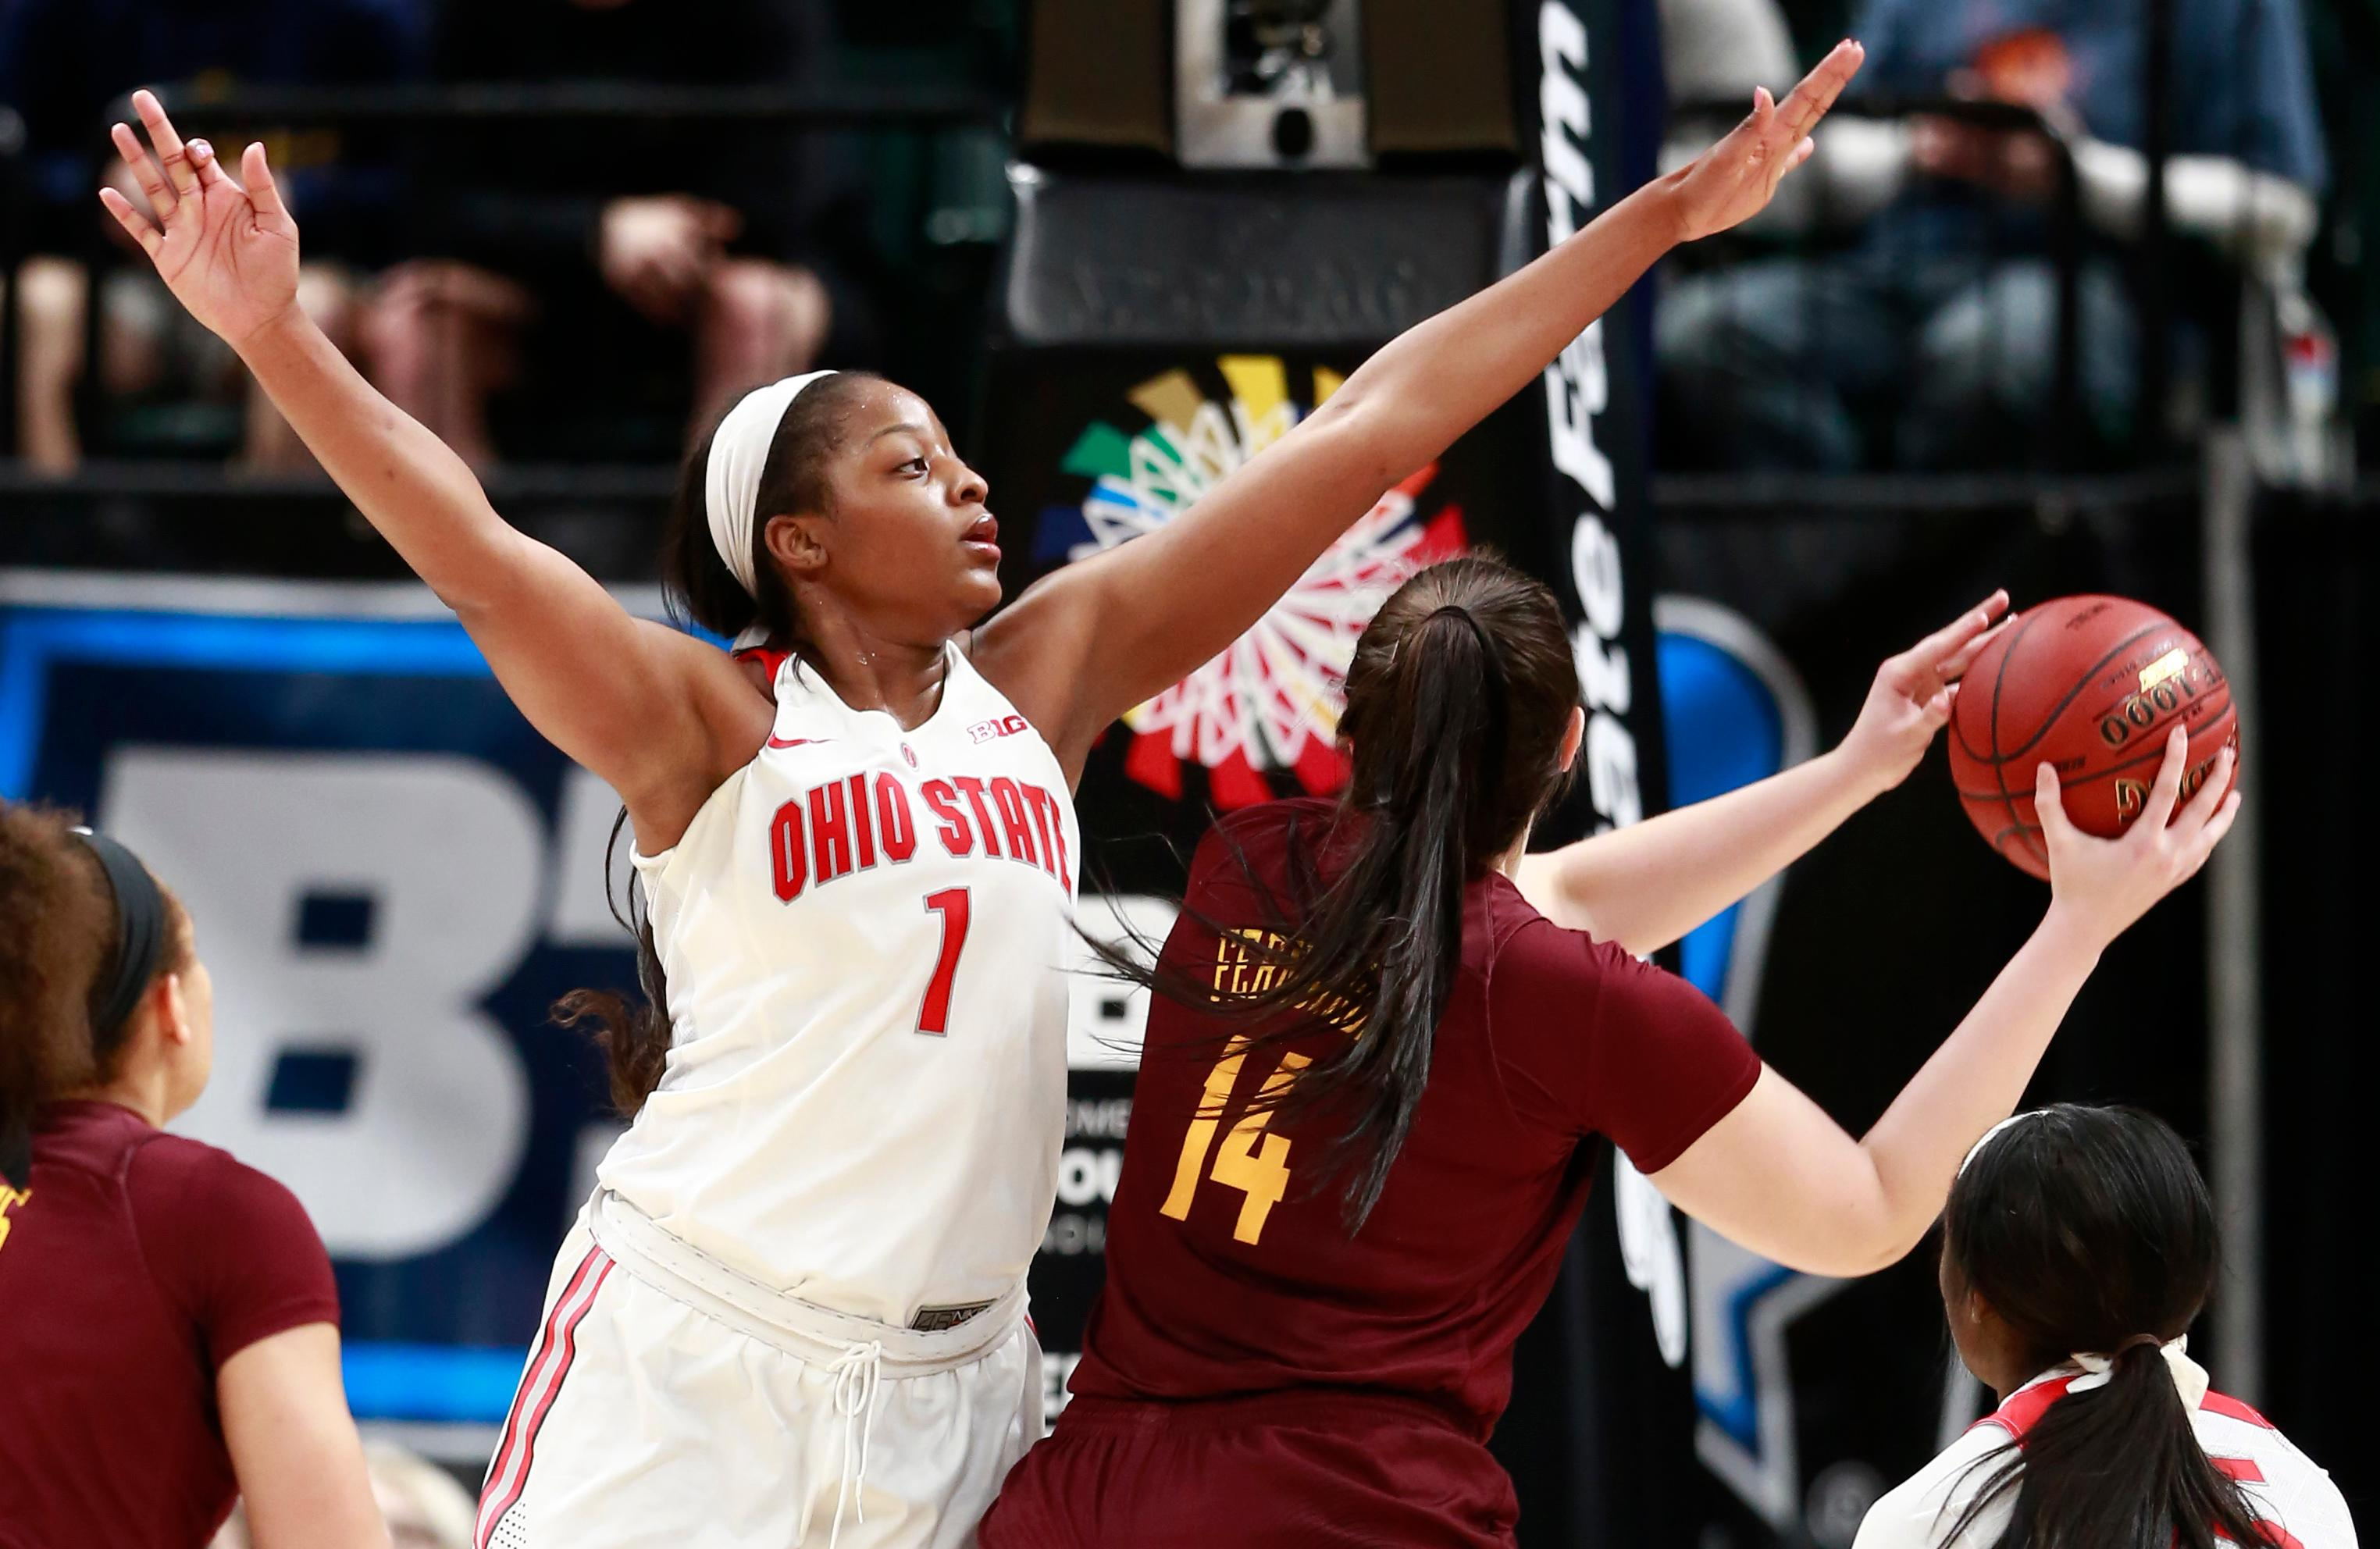 Ohio State forward Stephanie Mavunga (1) defends against Minnesota center Bryanna Fernstrom during the second half of an NCAA college basketball game in the semifinals of the Big Ten women's tournament, Saturday, March 3, 2018, in Indianapolis. Ohio State won 90-88. (AP Photo/R Brent Smith)